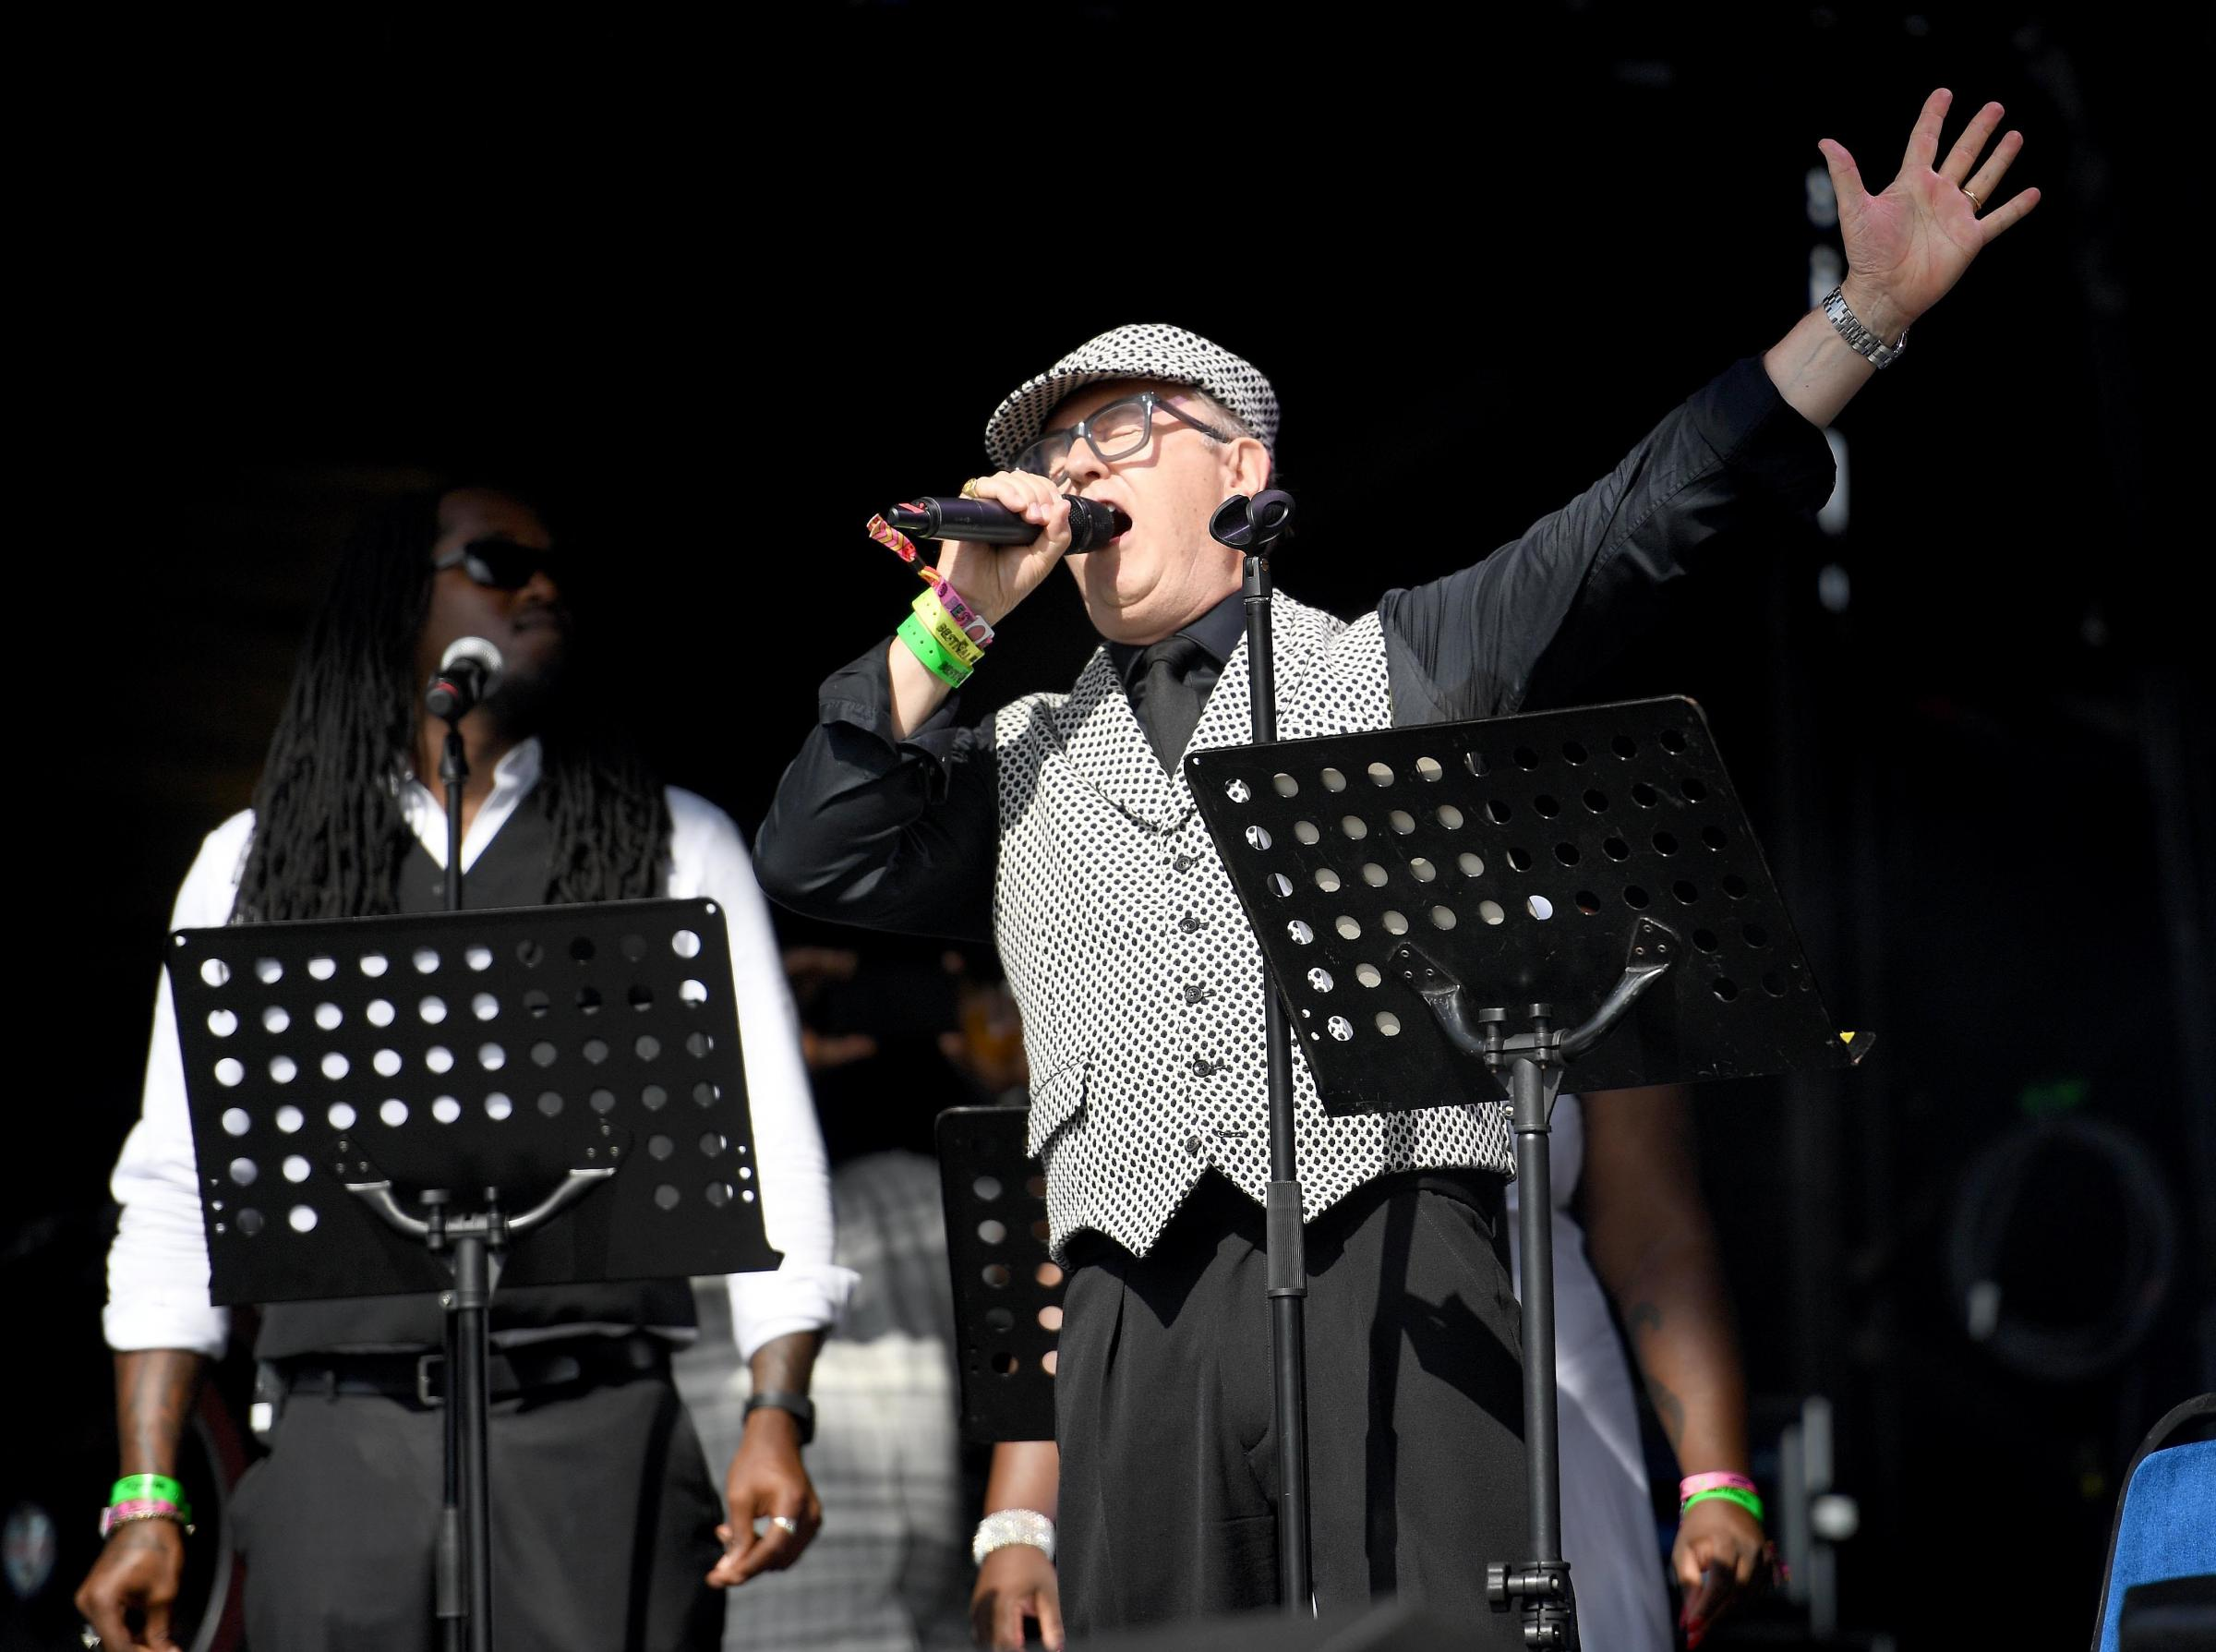 David Rodigan performs on stage at Bestival